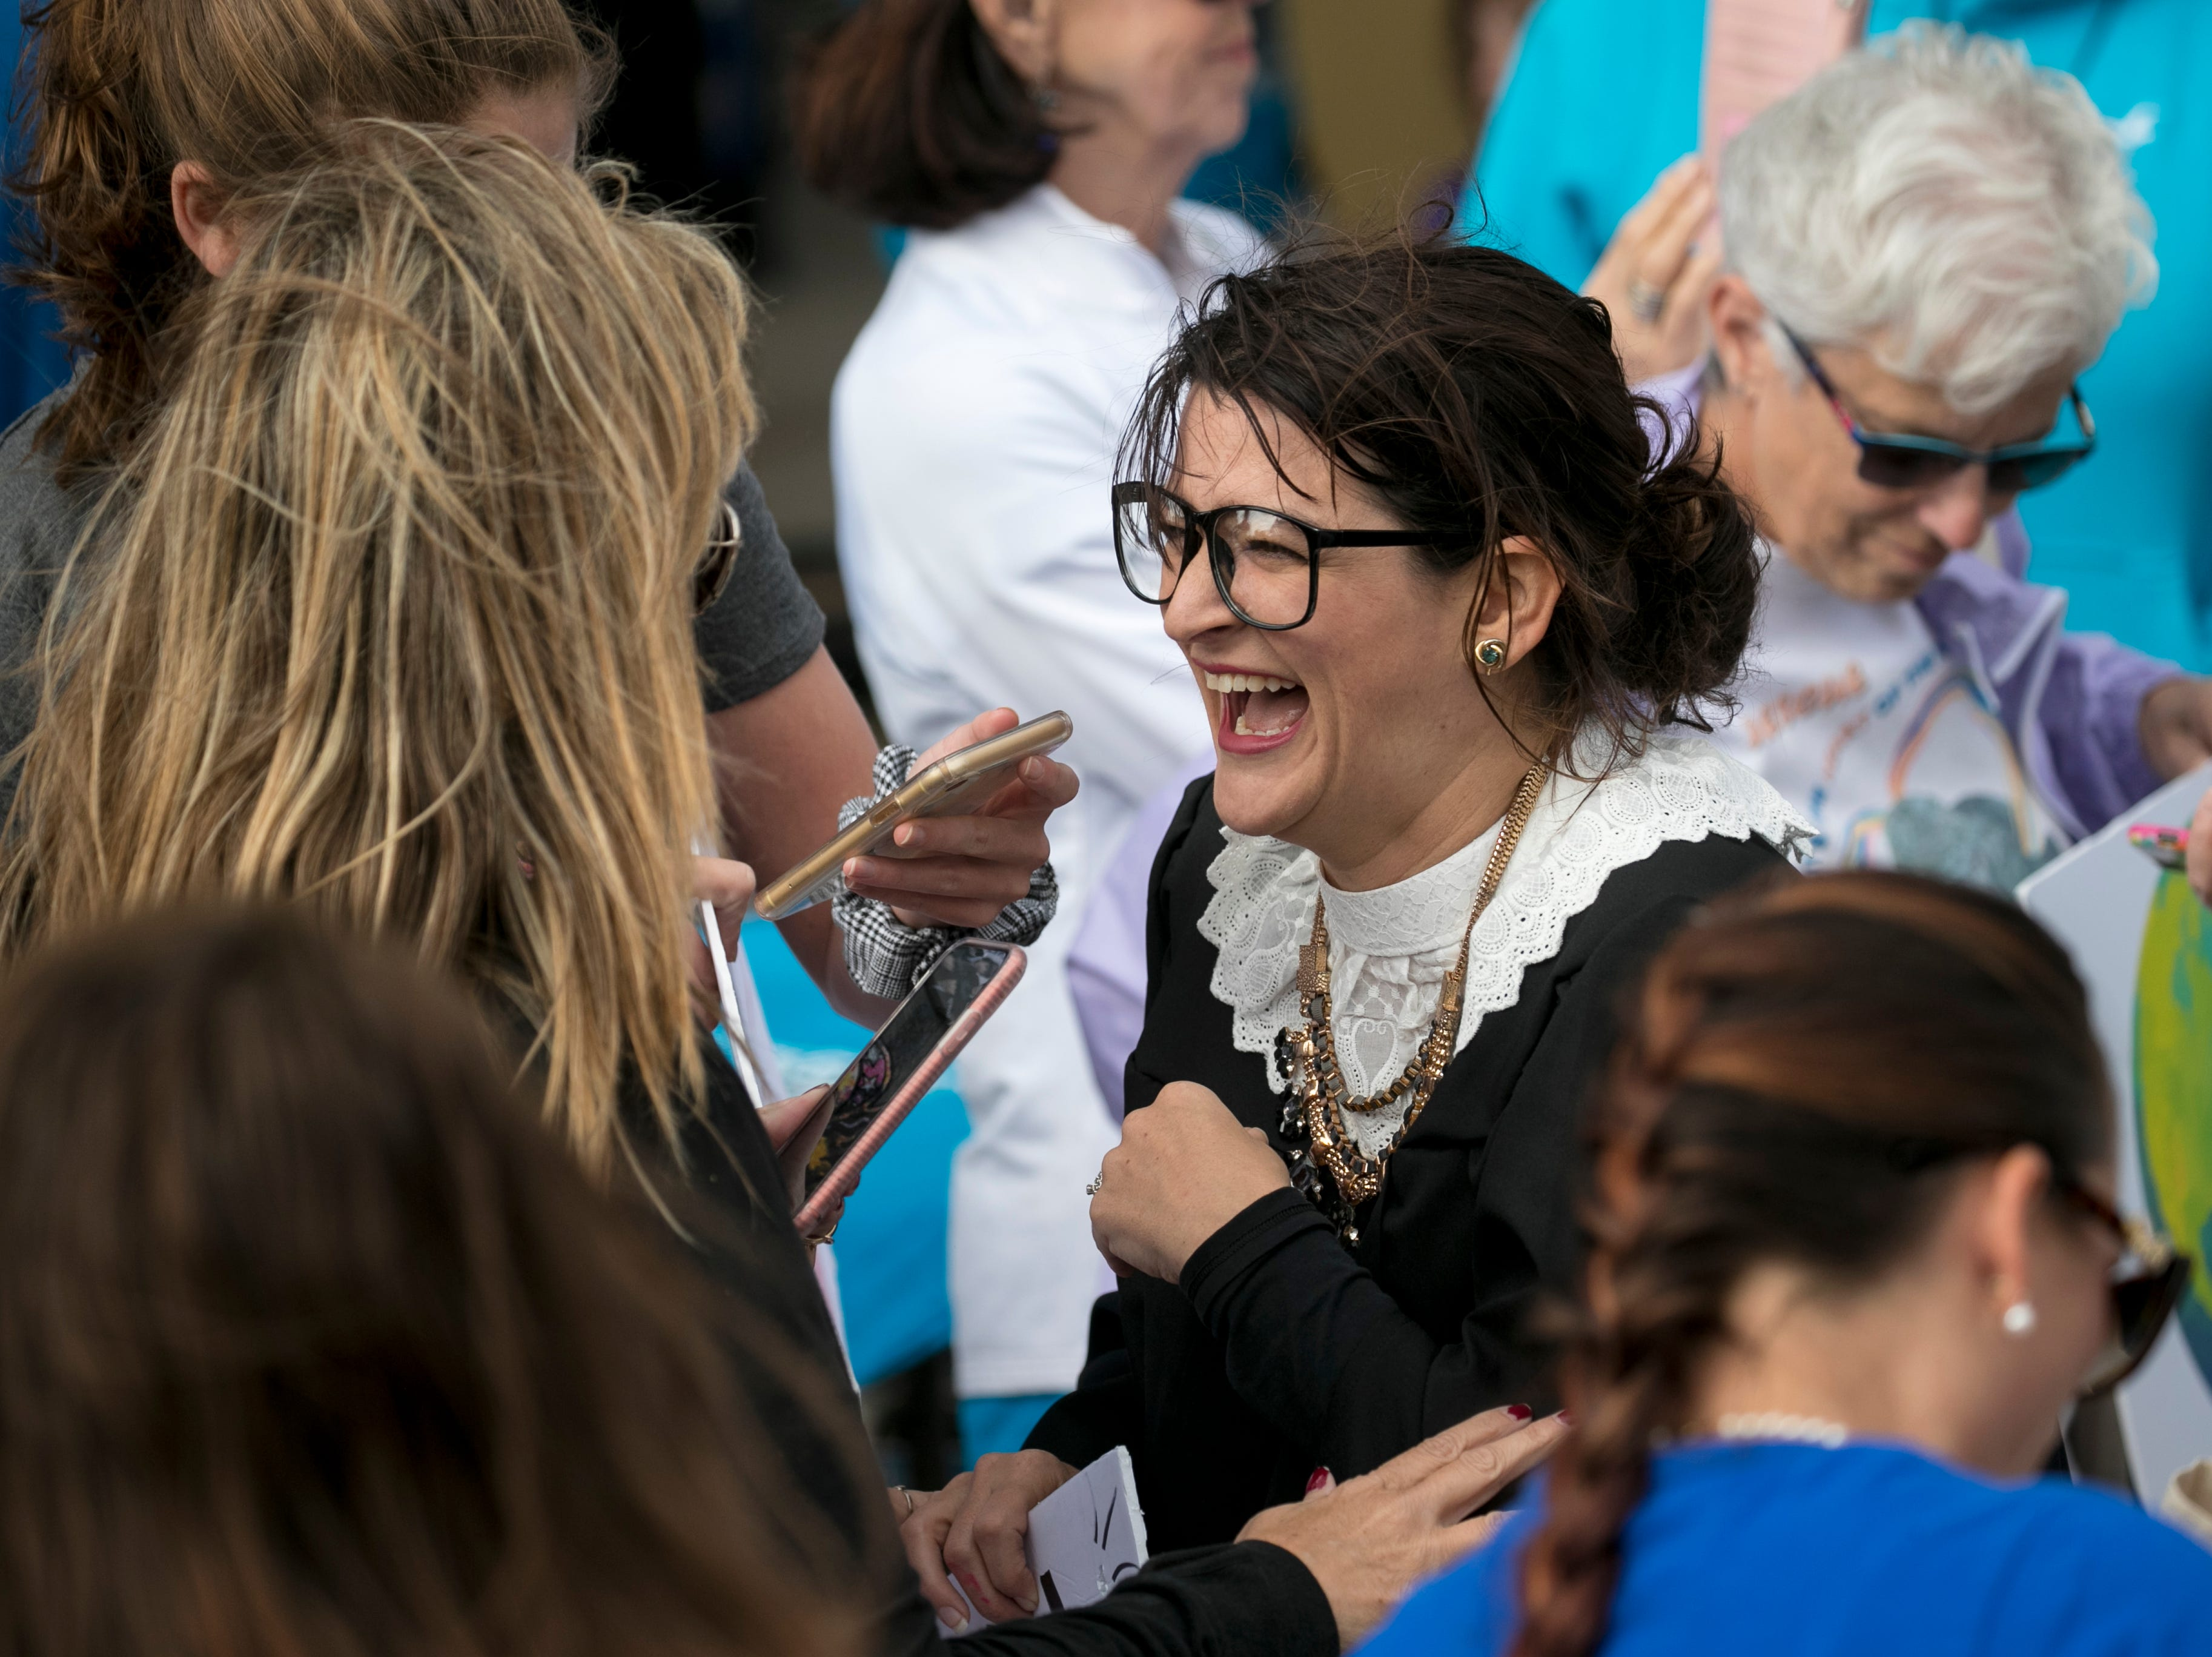 Jessica Lindsey, dressed as Supreme Court Justice Ruth Bader Ginsberg, laughs with other participants in the Fort Myers Women's March on Sunday, Jan. 20, 2019.